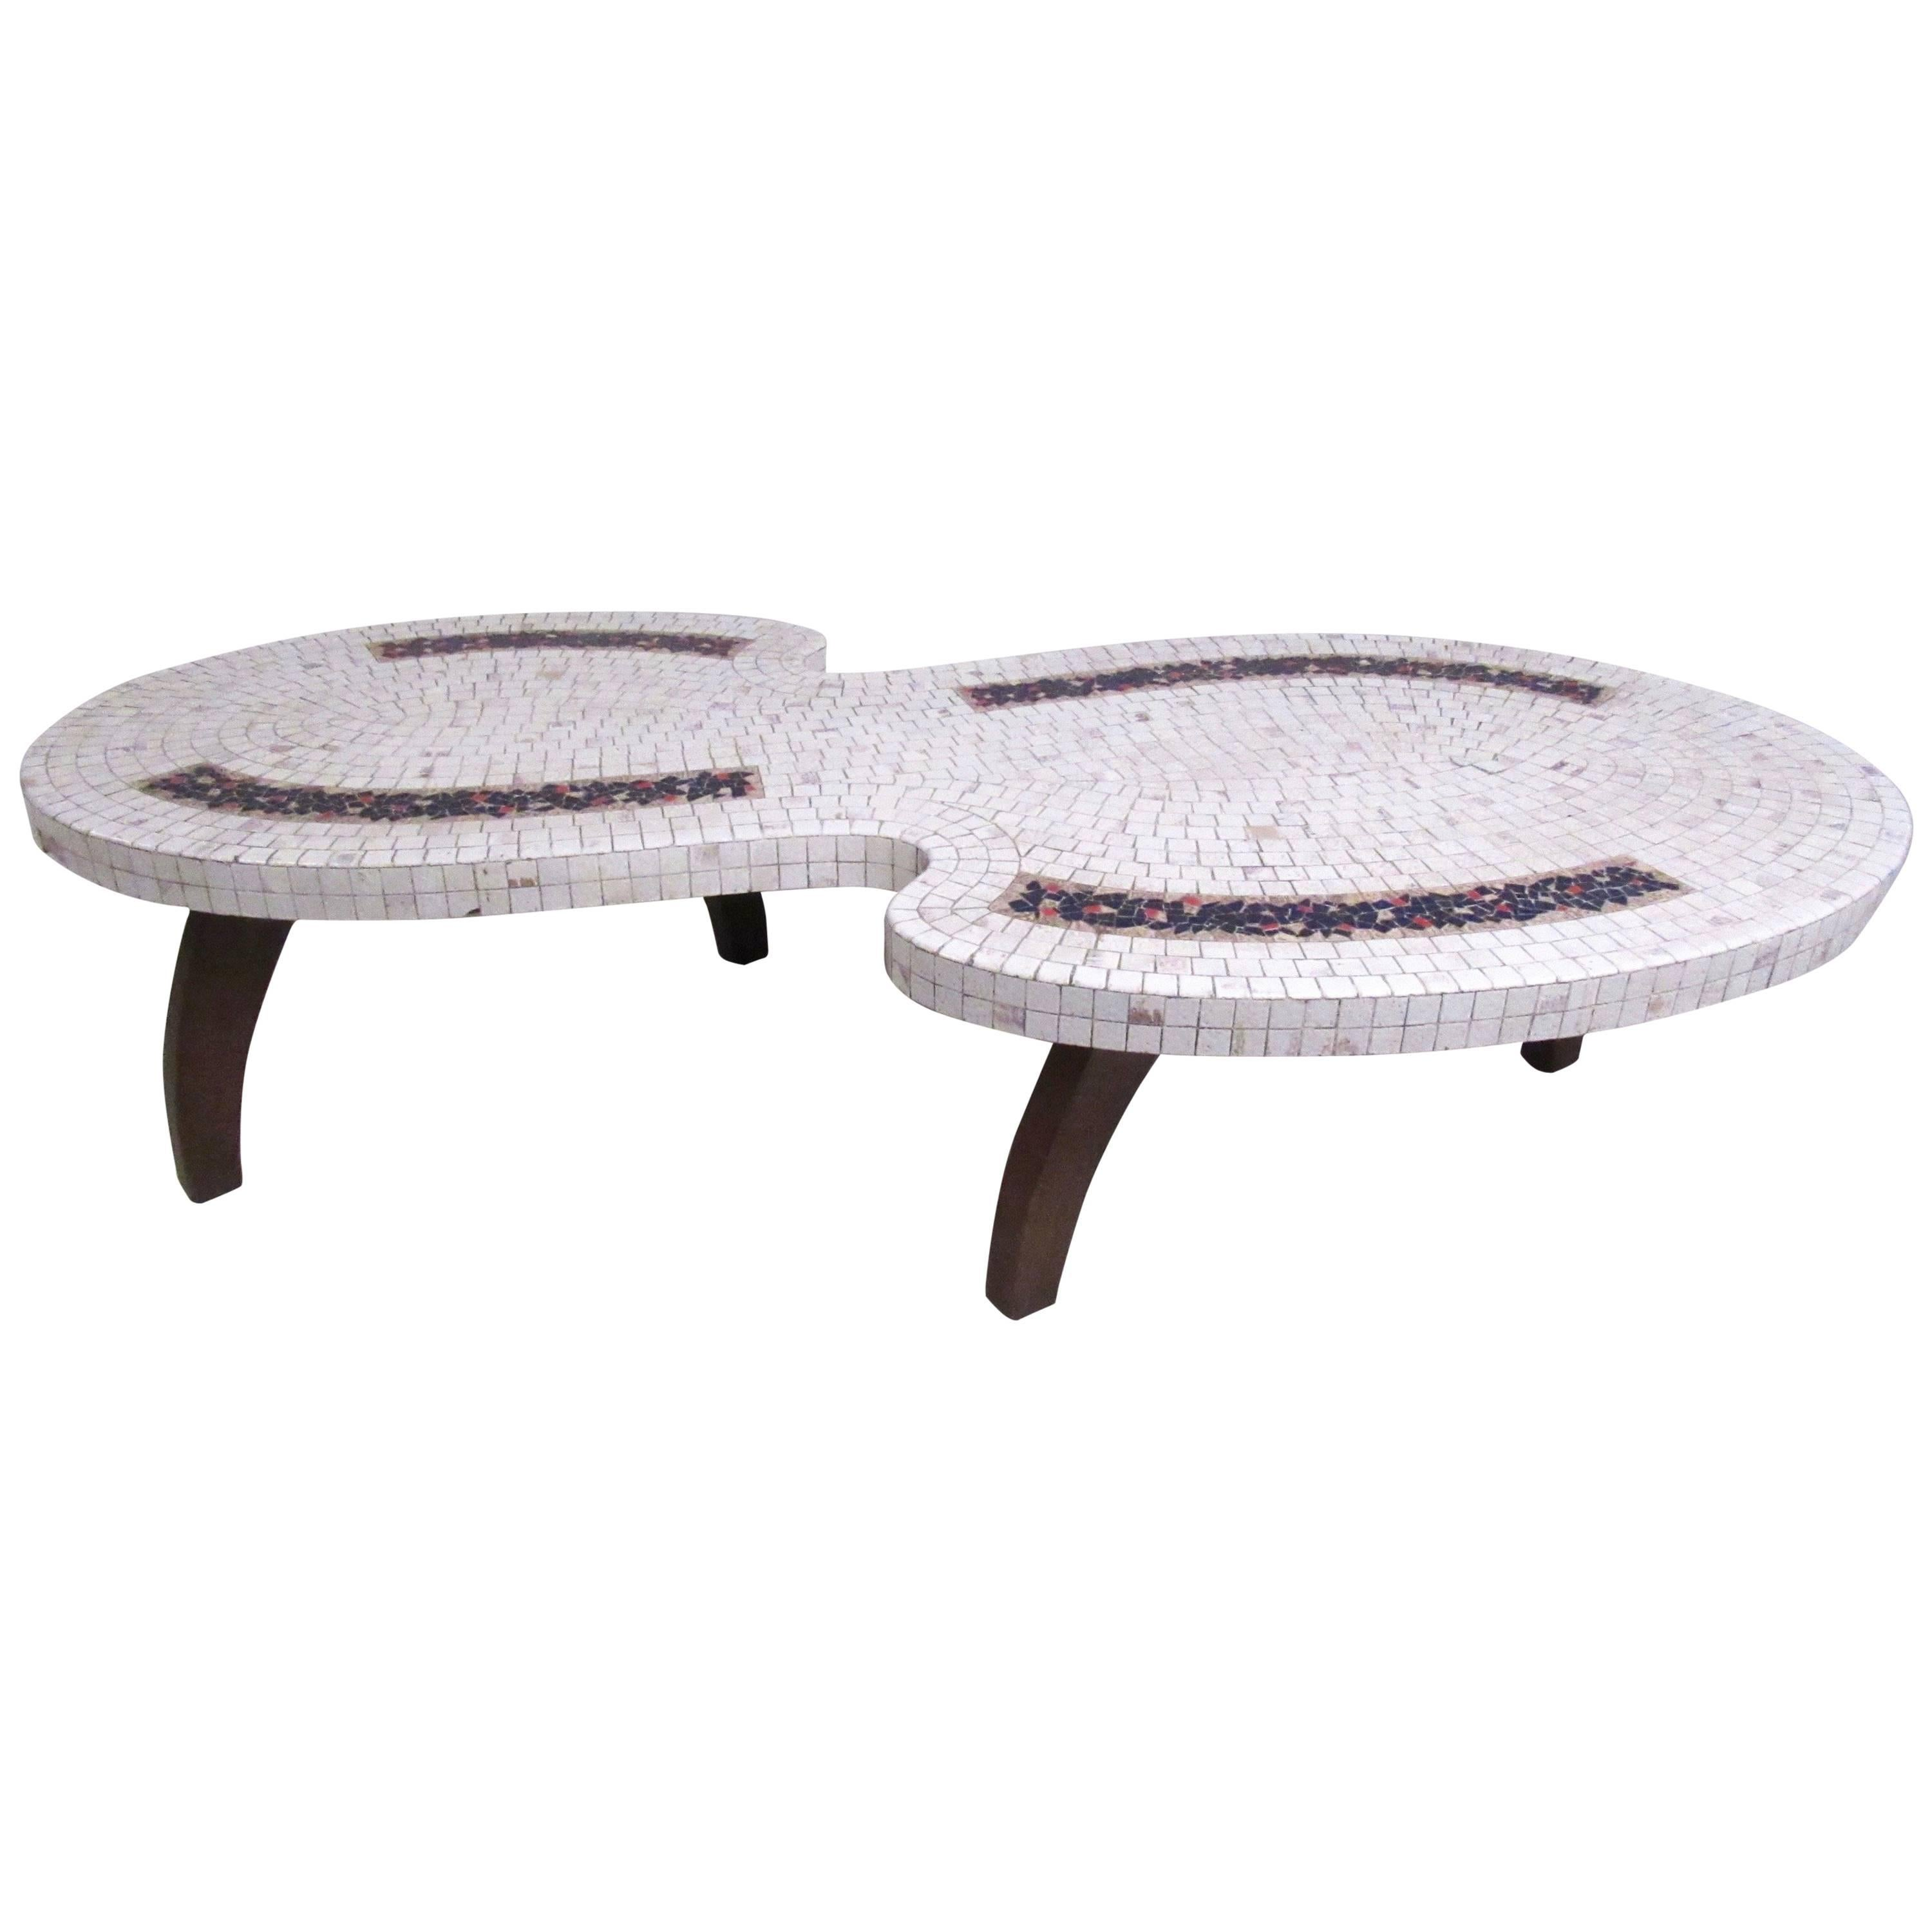 Stylish Mid Century Modern Mosaic Tile Coffee Table For Sale At 1stdibs